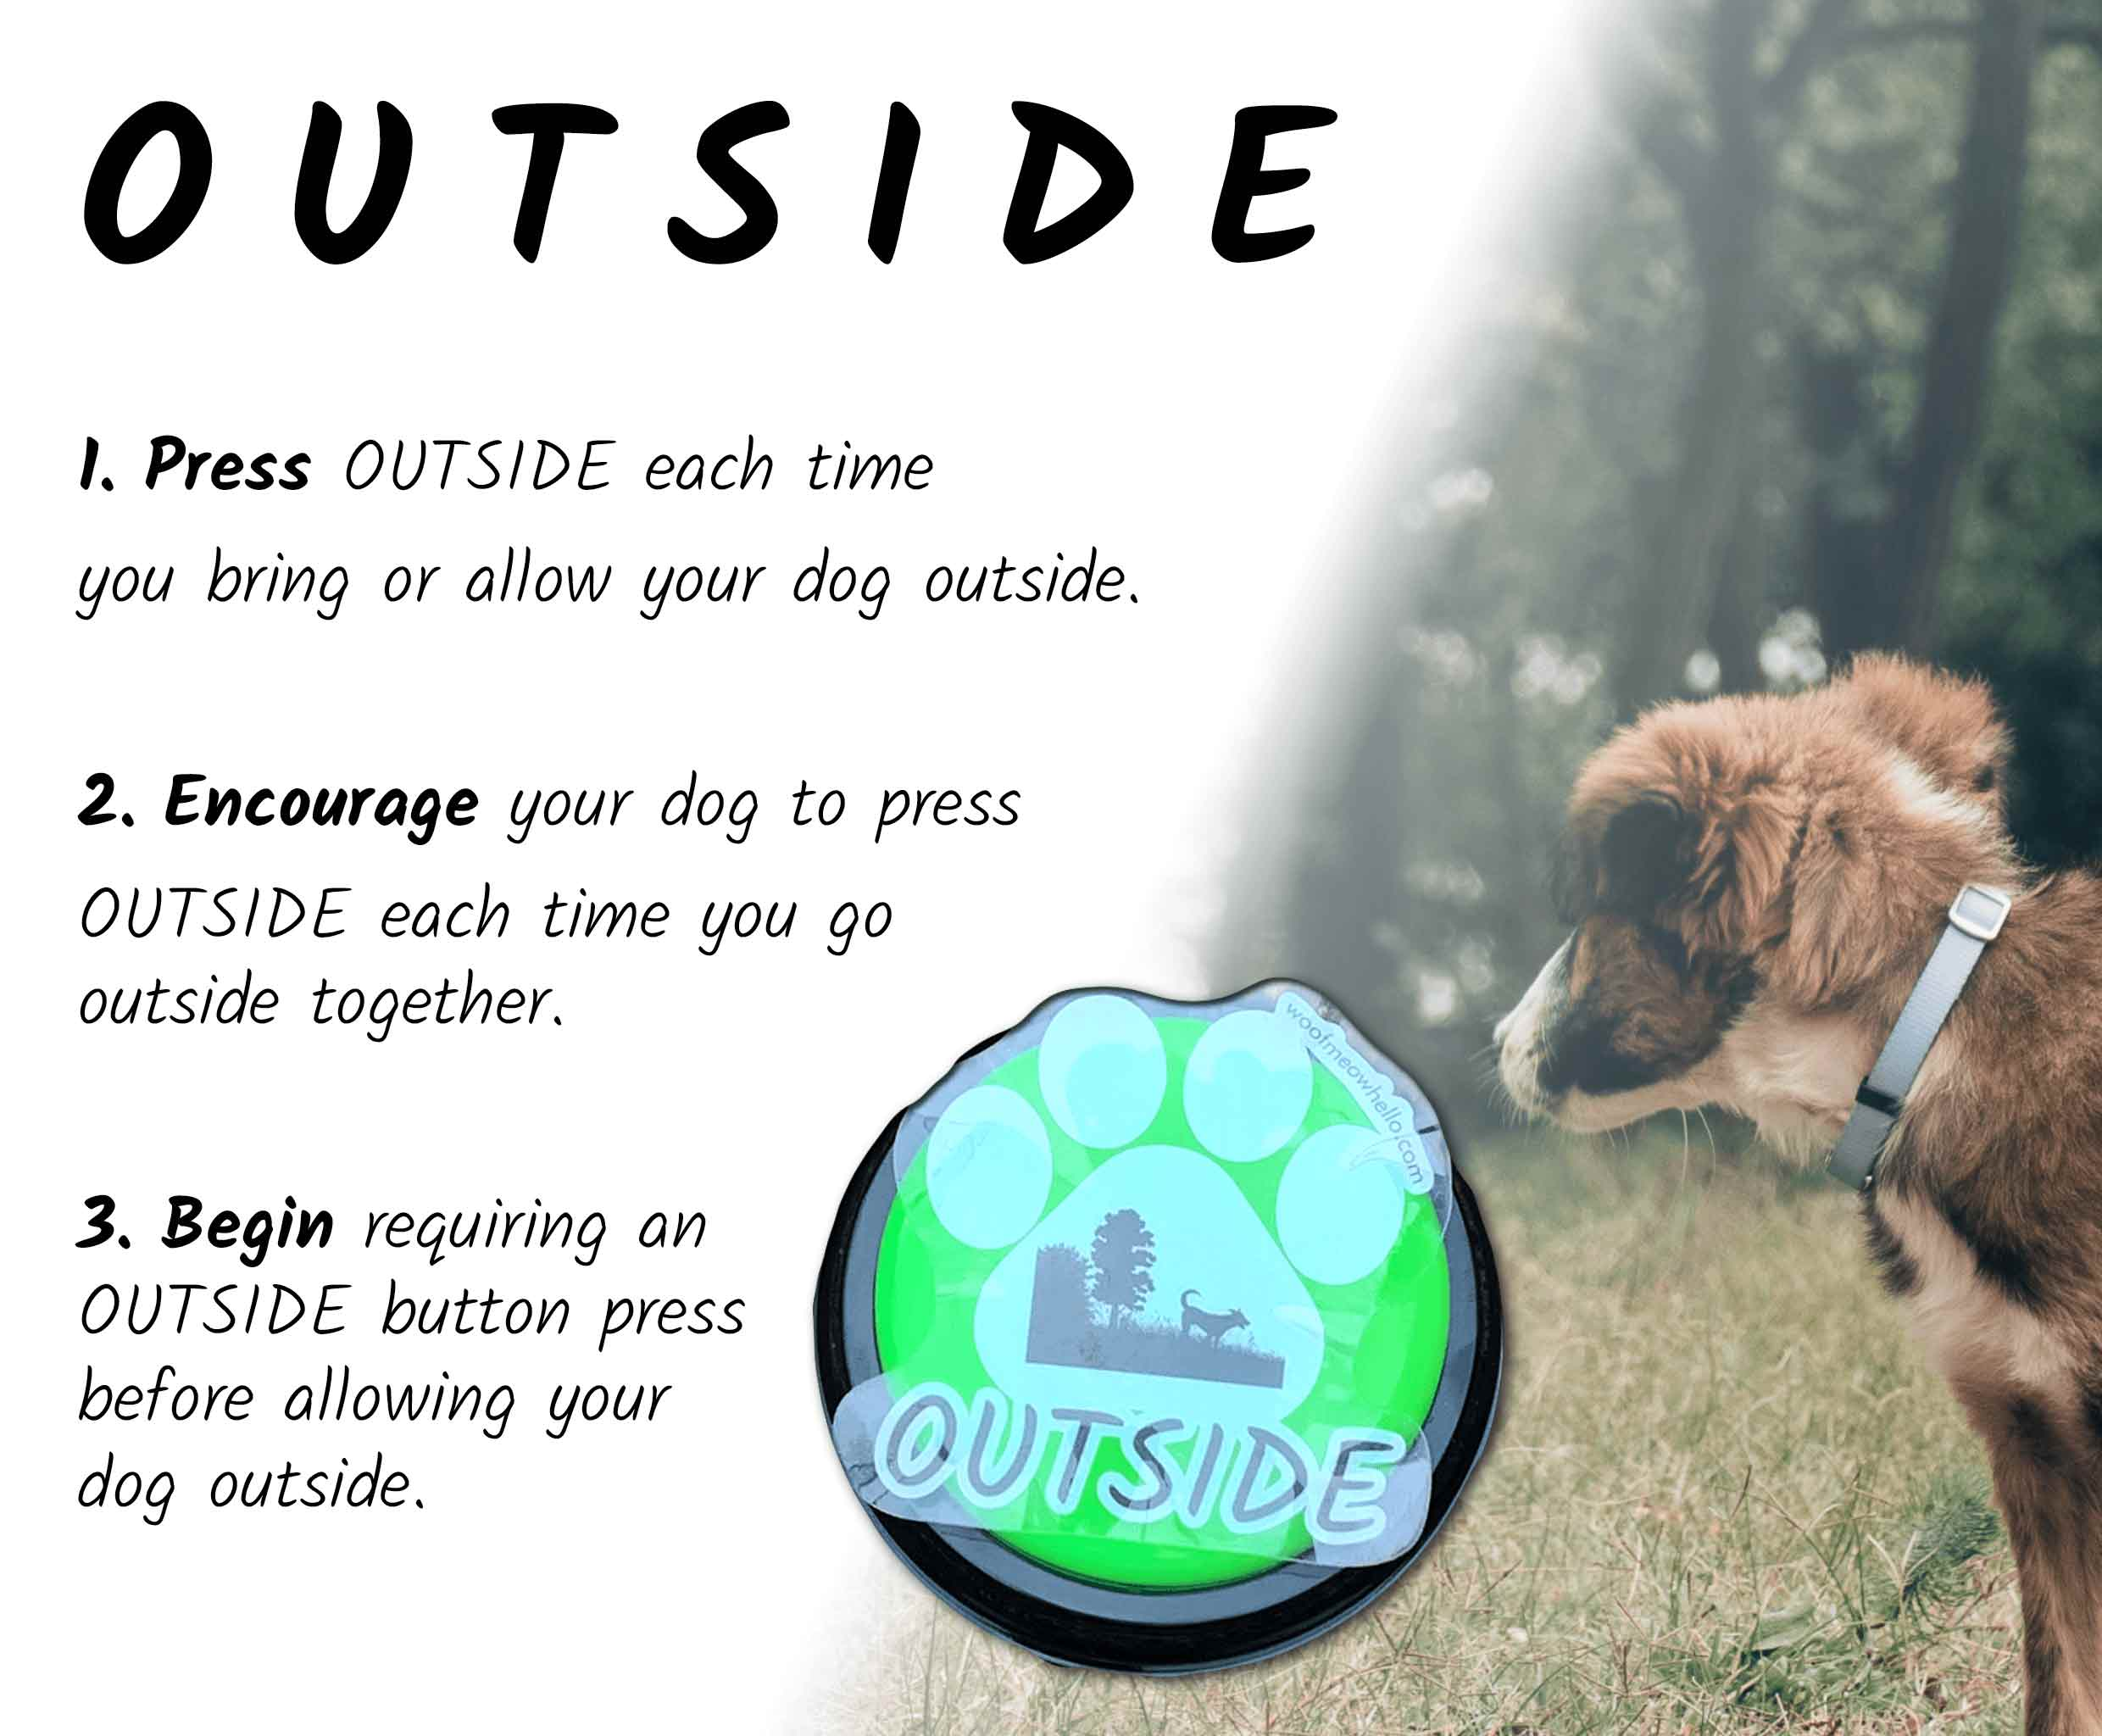 Press OUTSIDE each time you bring or allow your dog outside. Encourage your dog to press their OUTSIDE word button each time you go outside together. Begin requiring an OUTSIDE talking button press before allowing your dog outside.